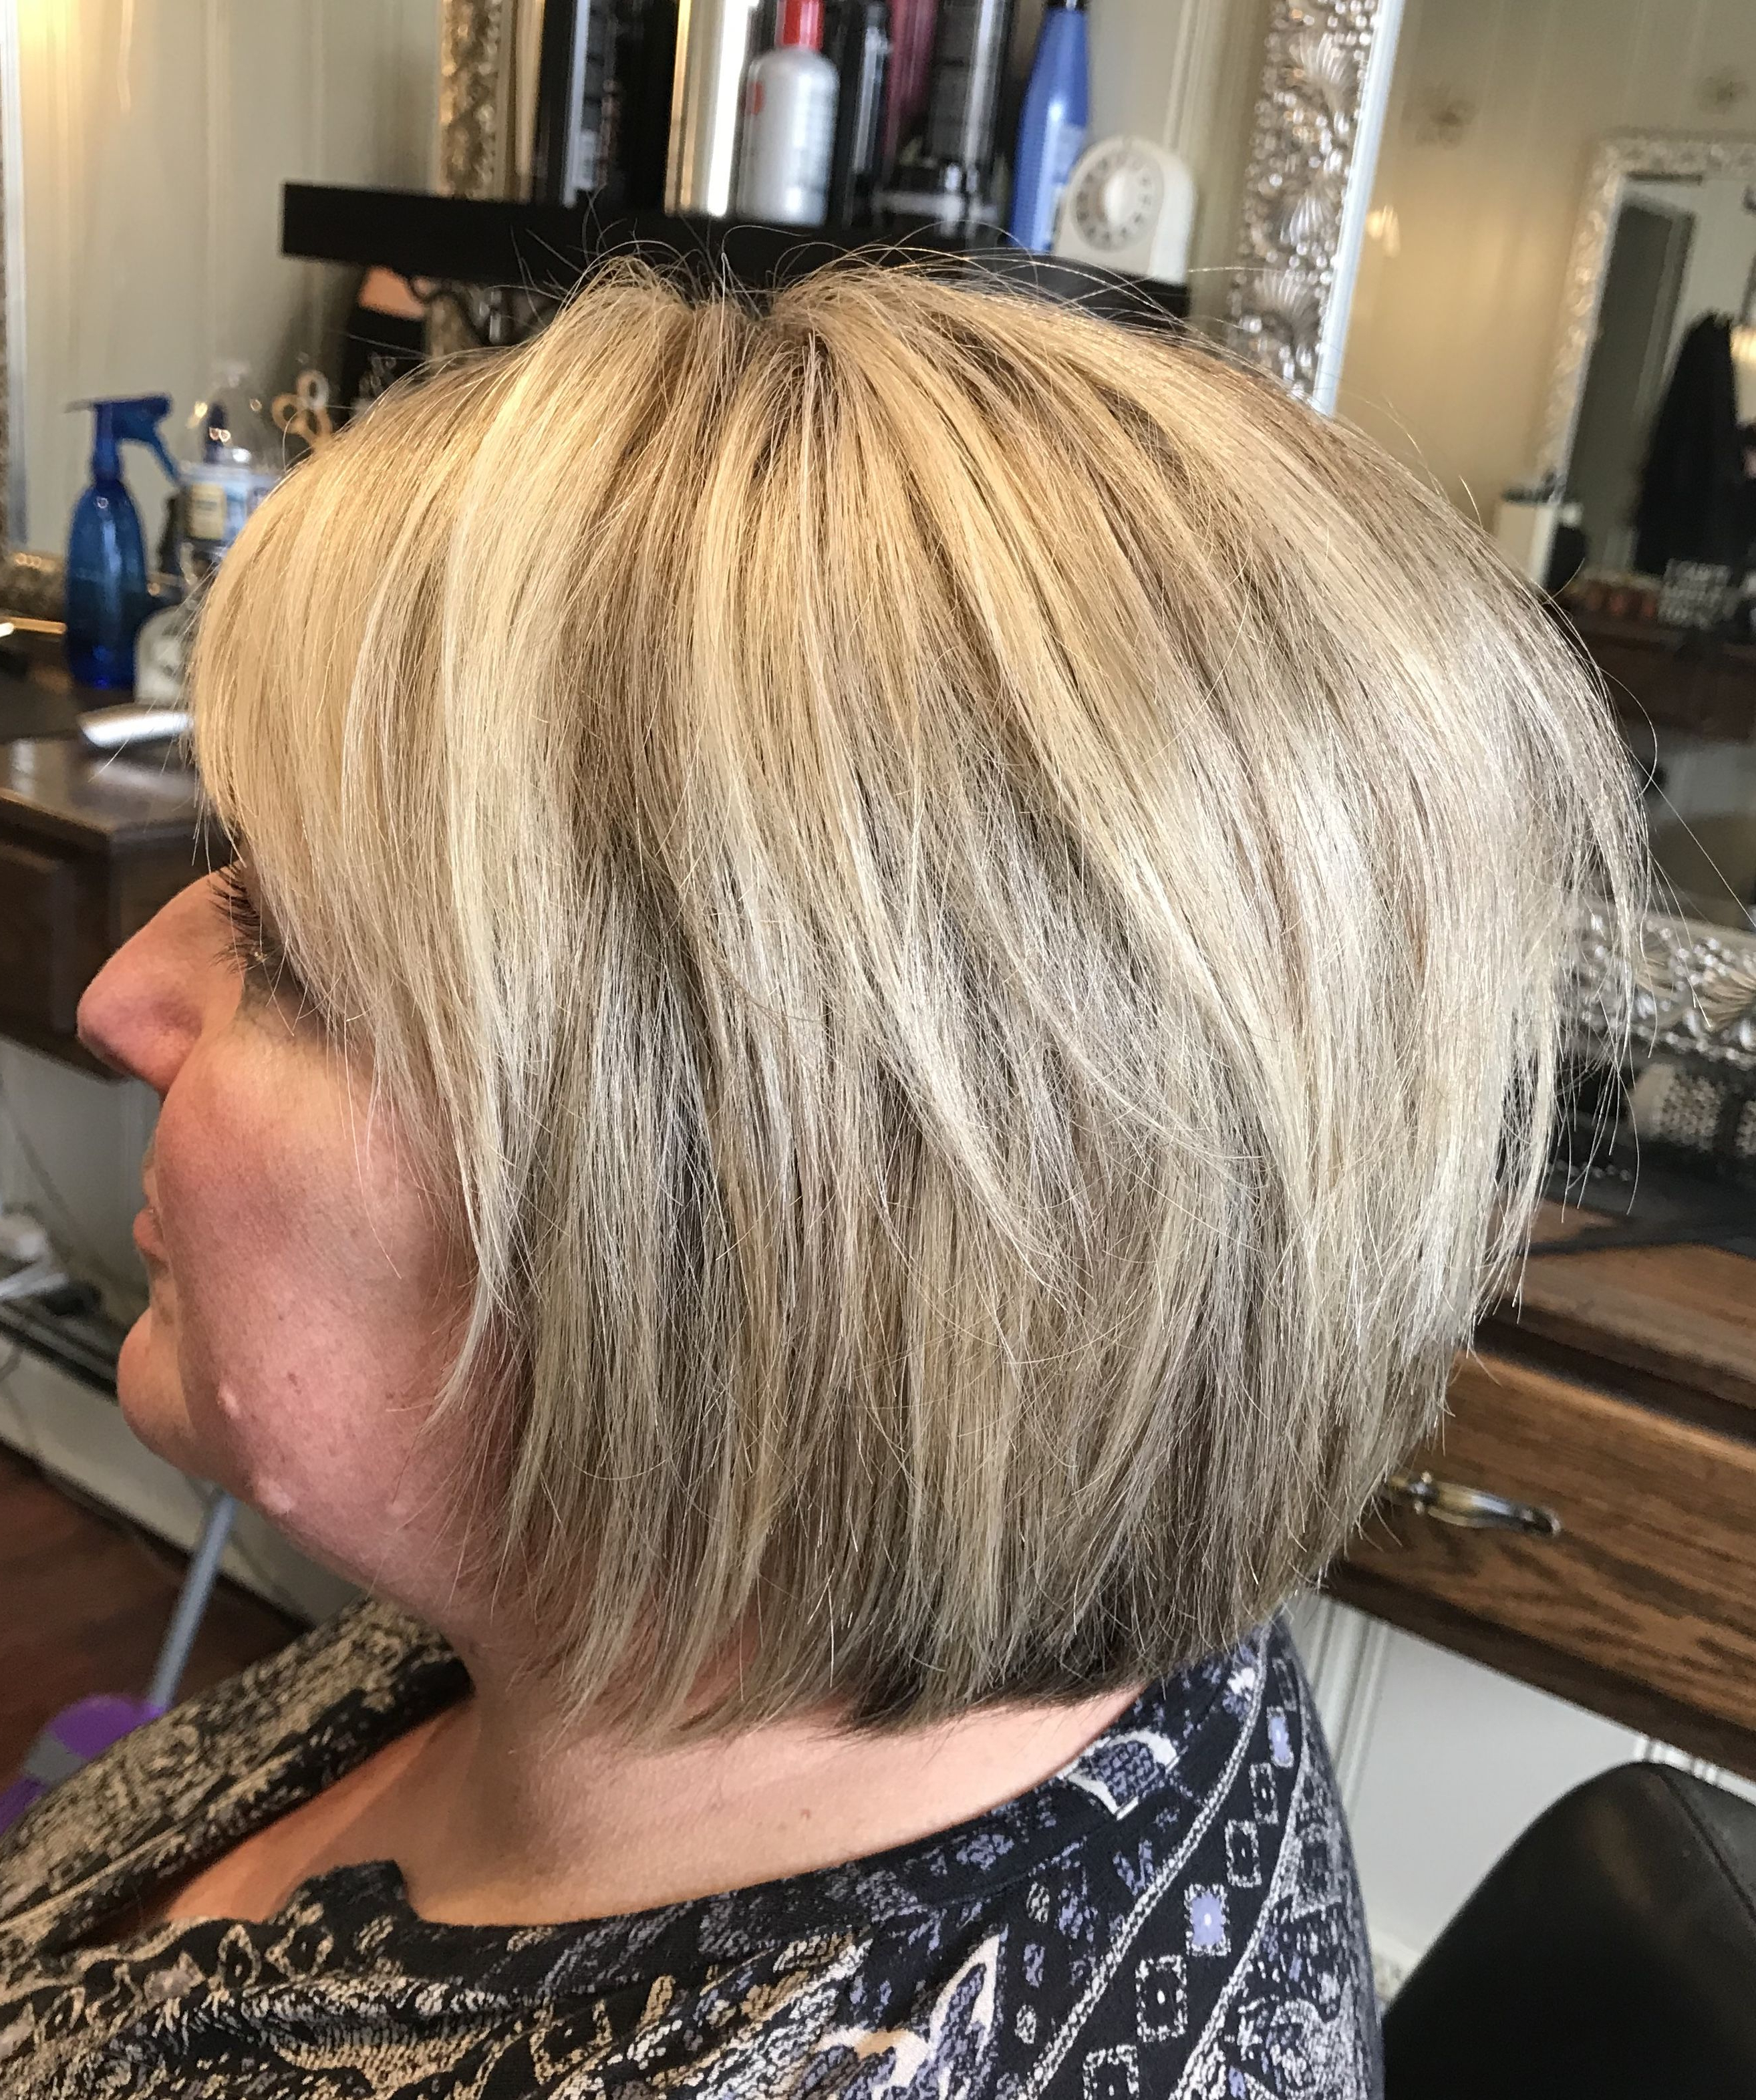 Bright Blonde Highlights On A Choppy Bob Haircut | Hair I've Throughout Bright Bob Hairstyles (View 3 of 20)